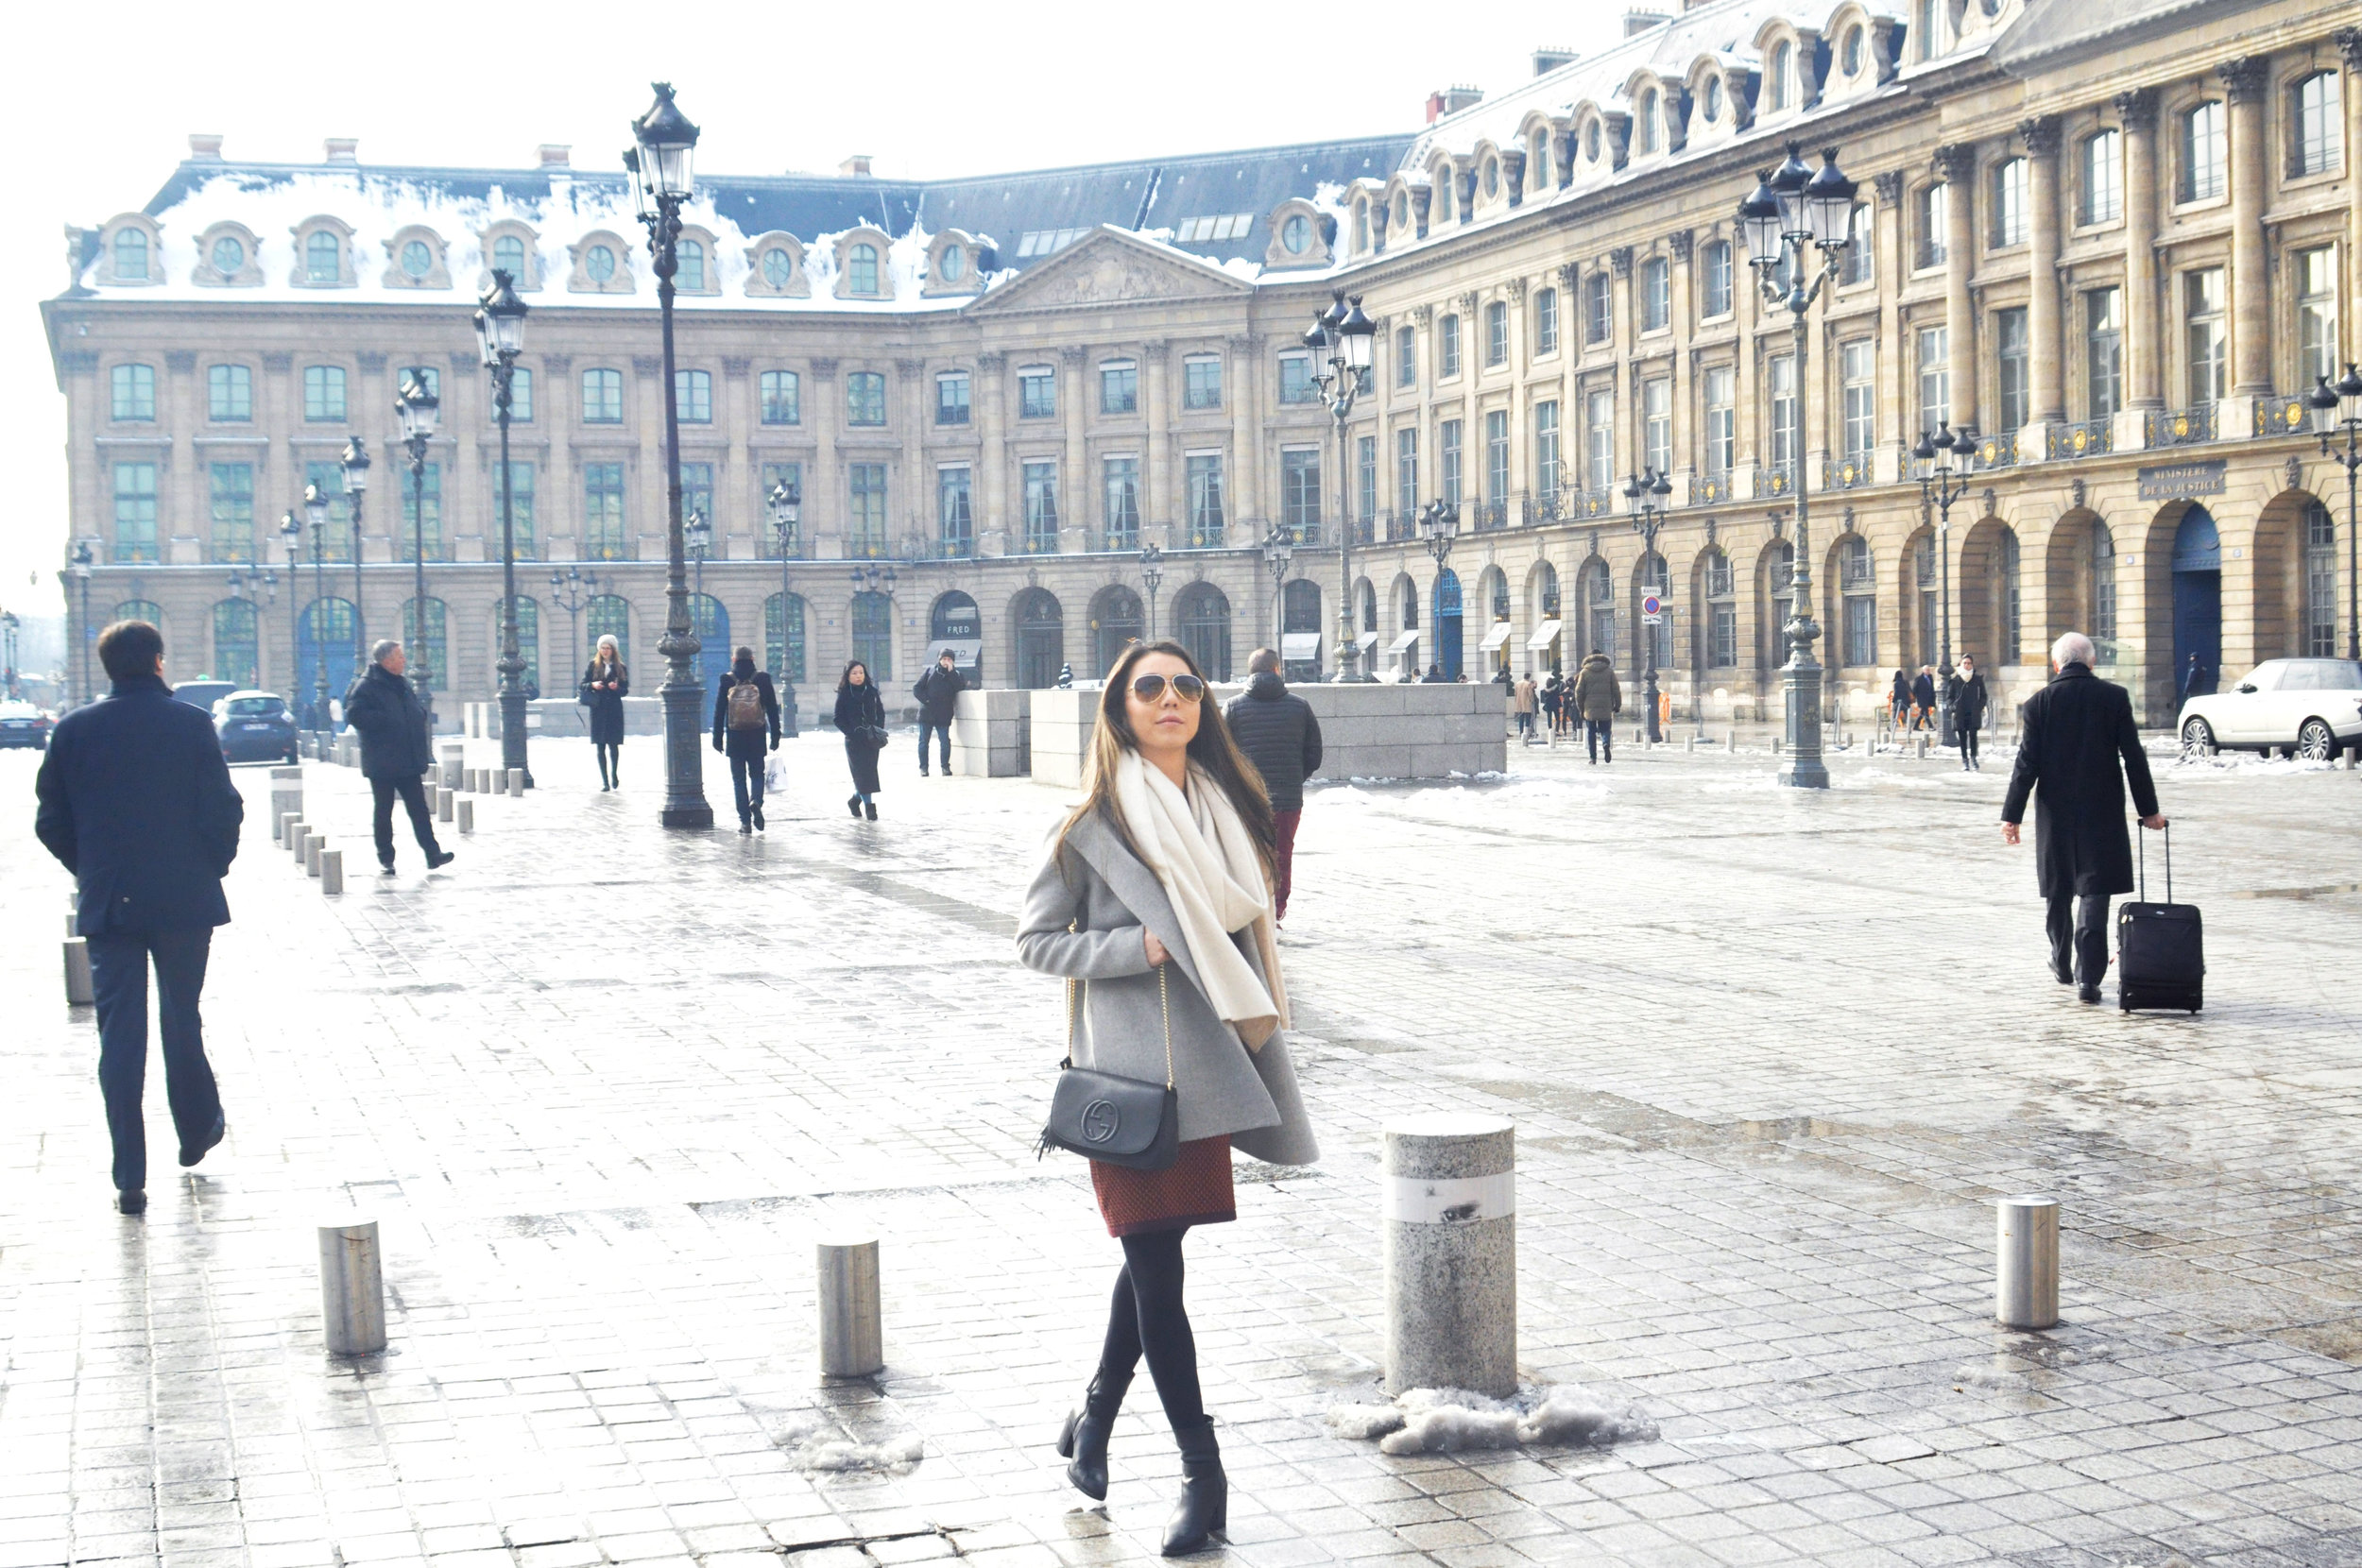 Place Vendome: Sneak peek from Part 2 of the Euro trip blog :)